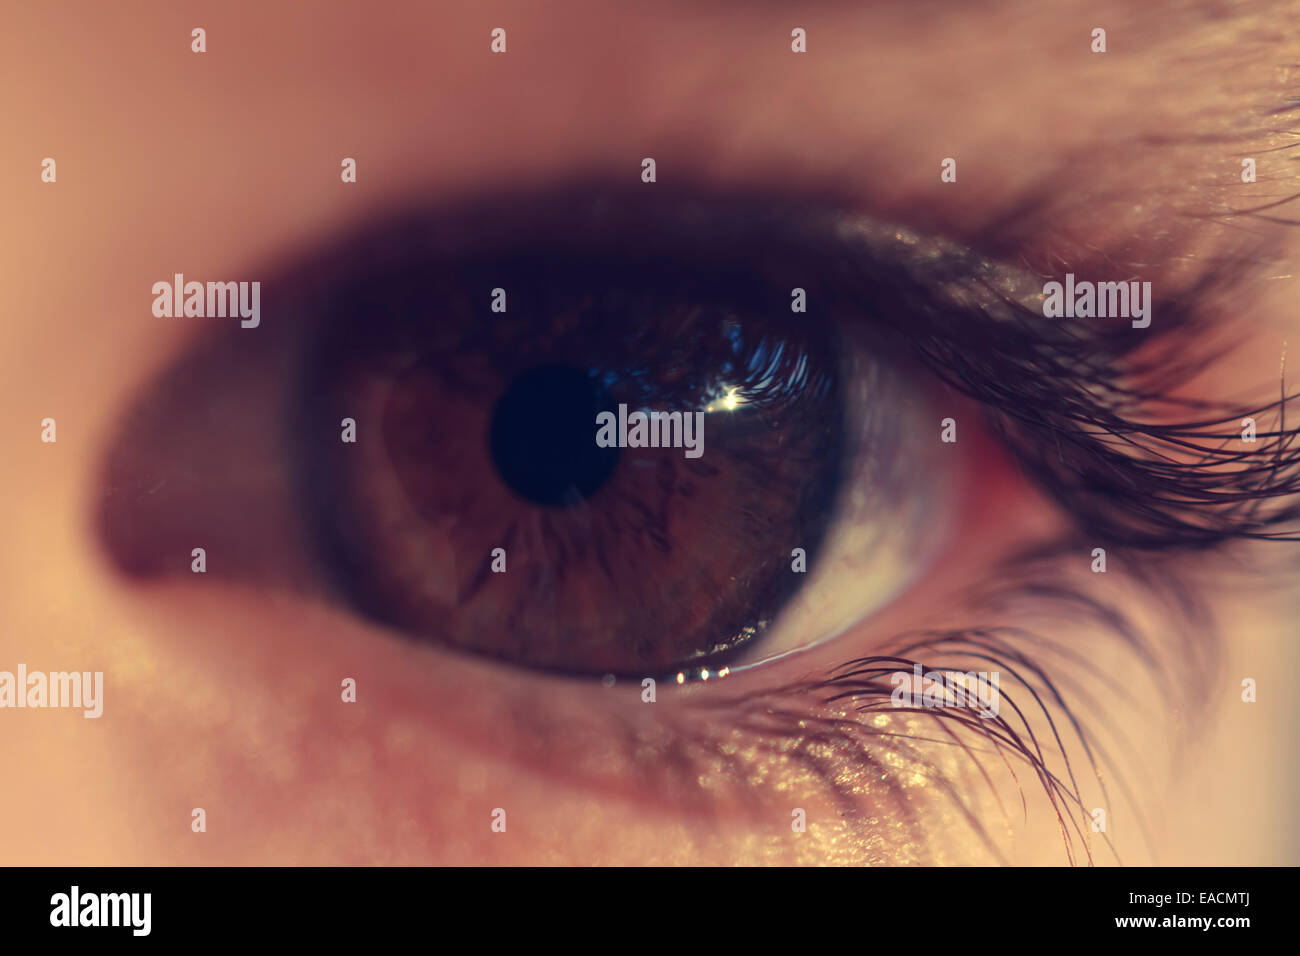 extreme close-up of an eye's 8 years boy. - Stock Image